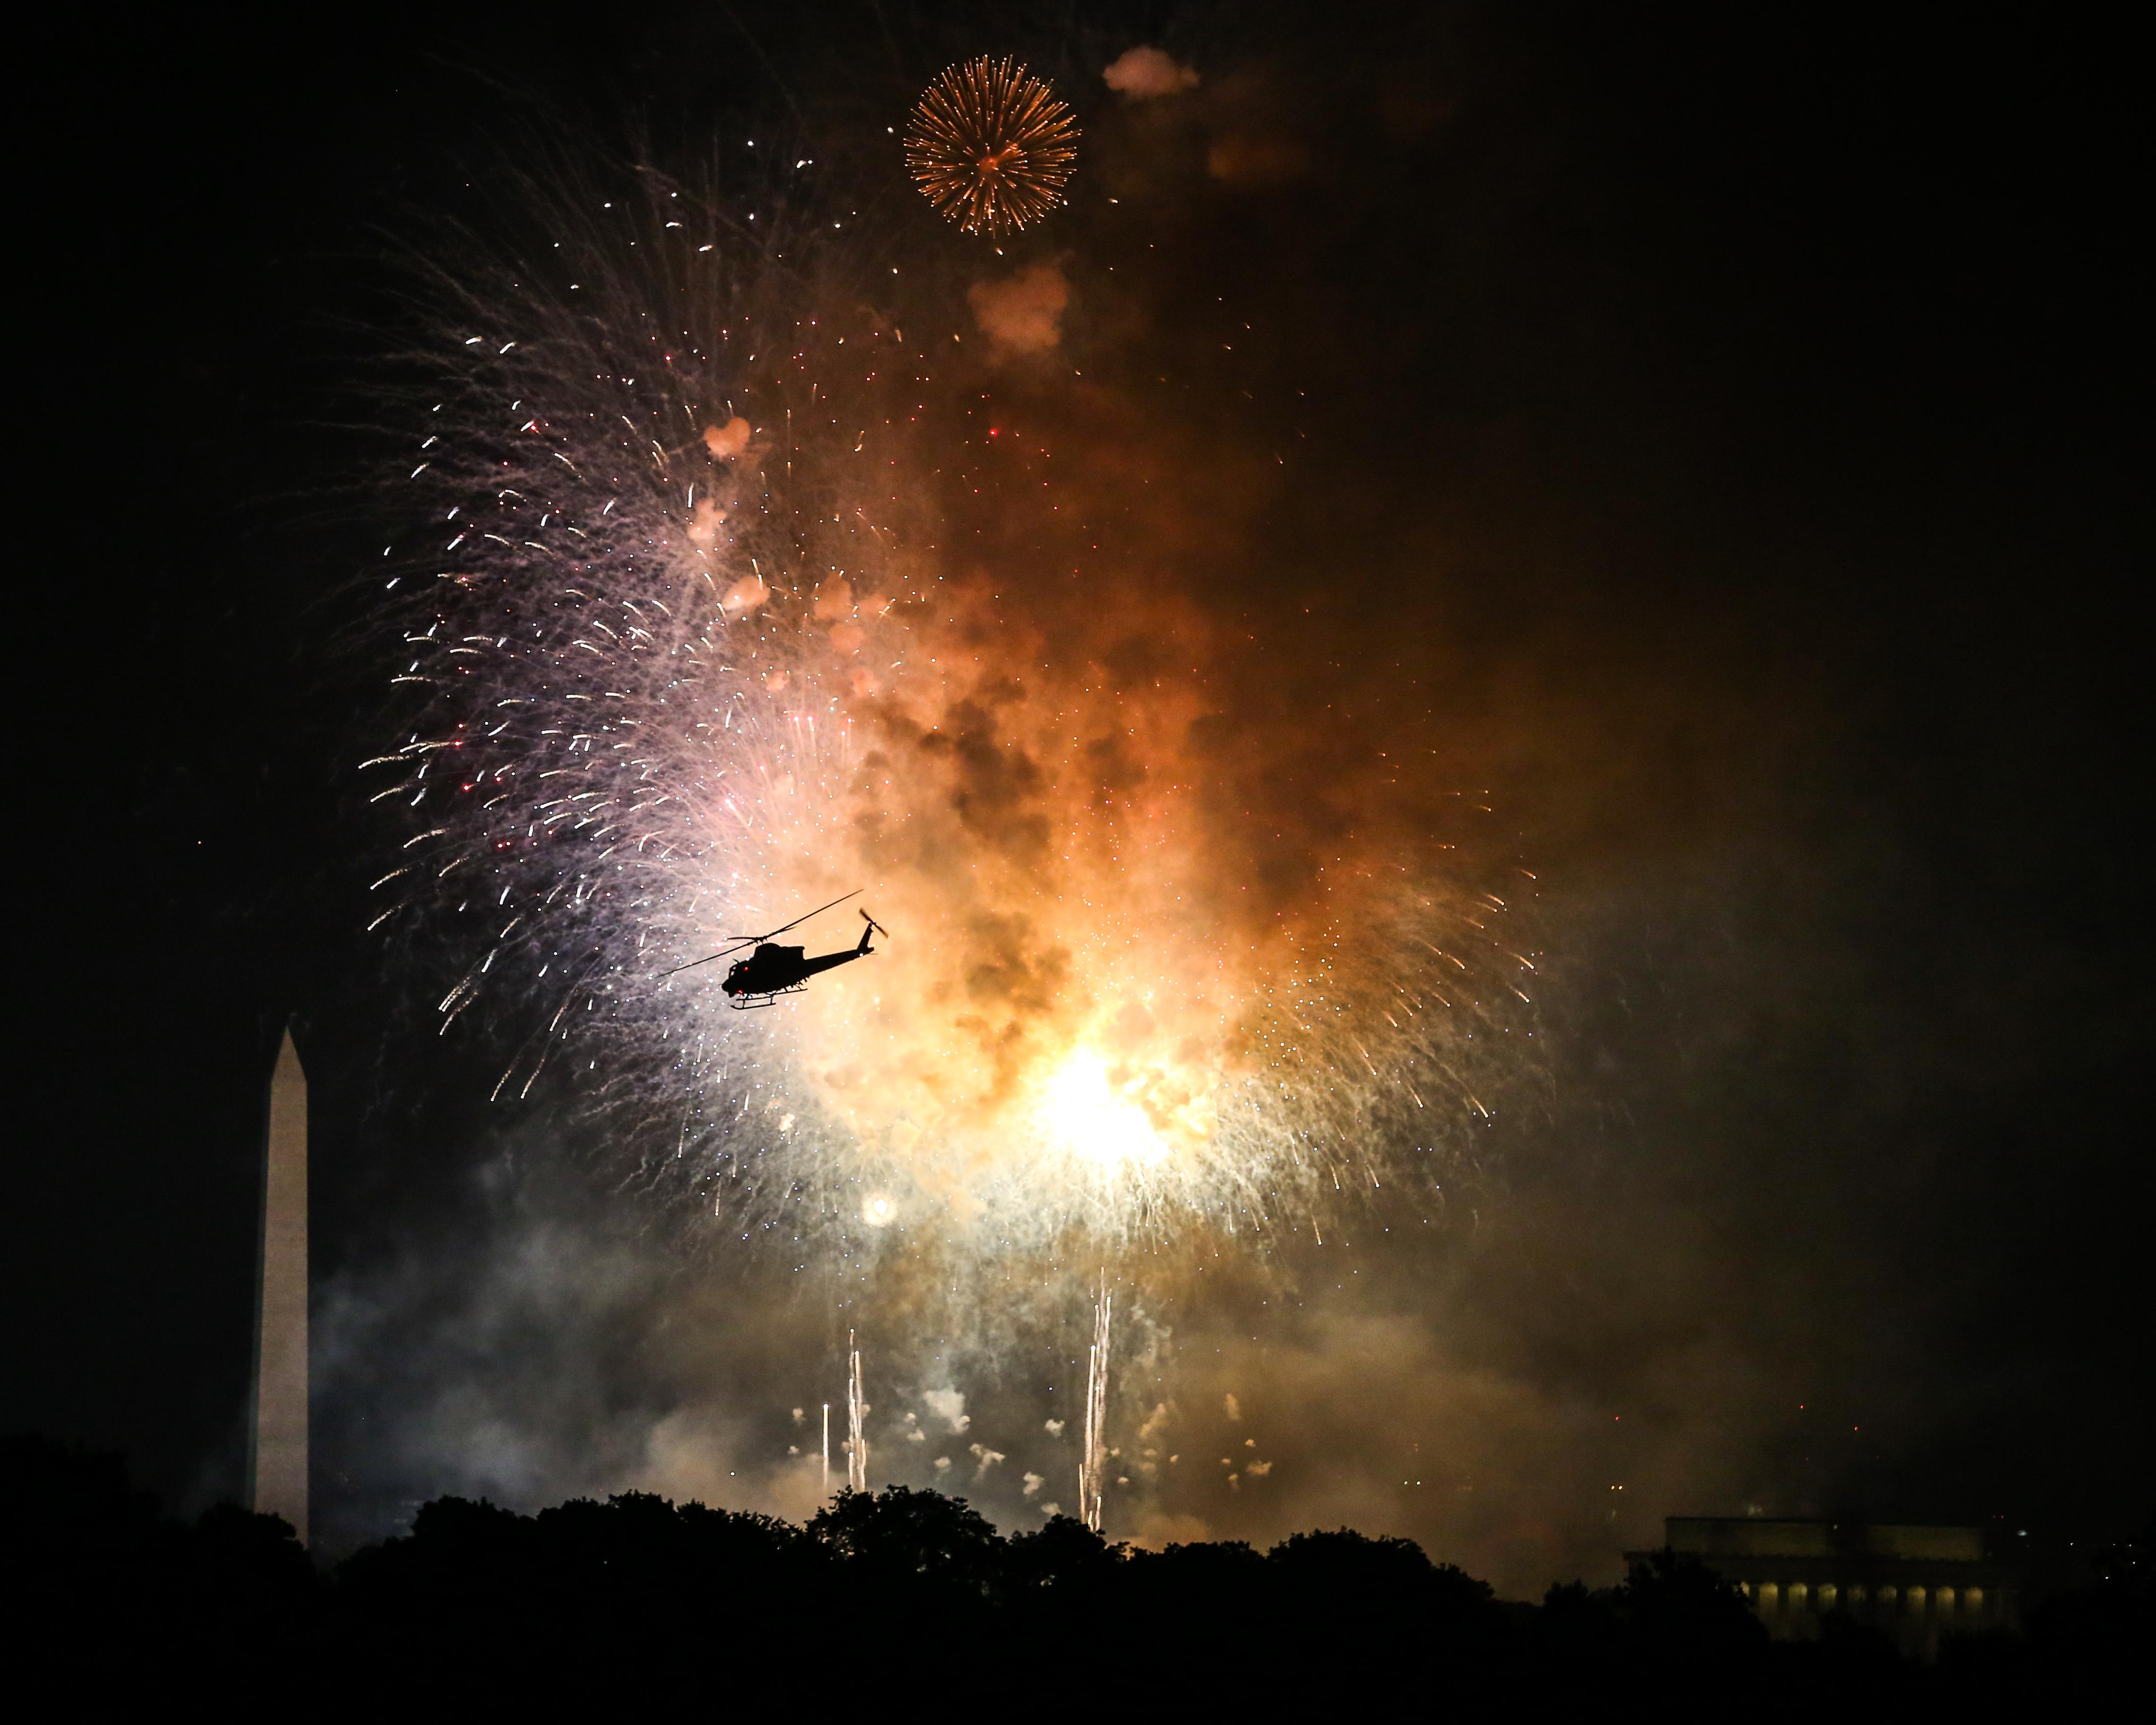 The 4th of July celebration was gorgeous, but that pilot probably had the best view.{&nbsp;}(Amanda Andrade-Rhoades/DC Refined)<p></p>